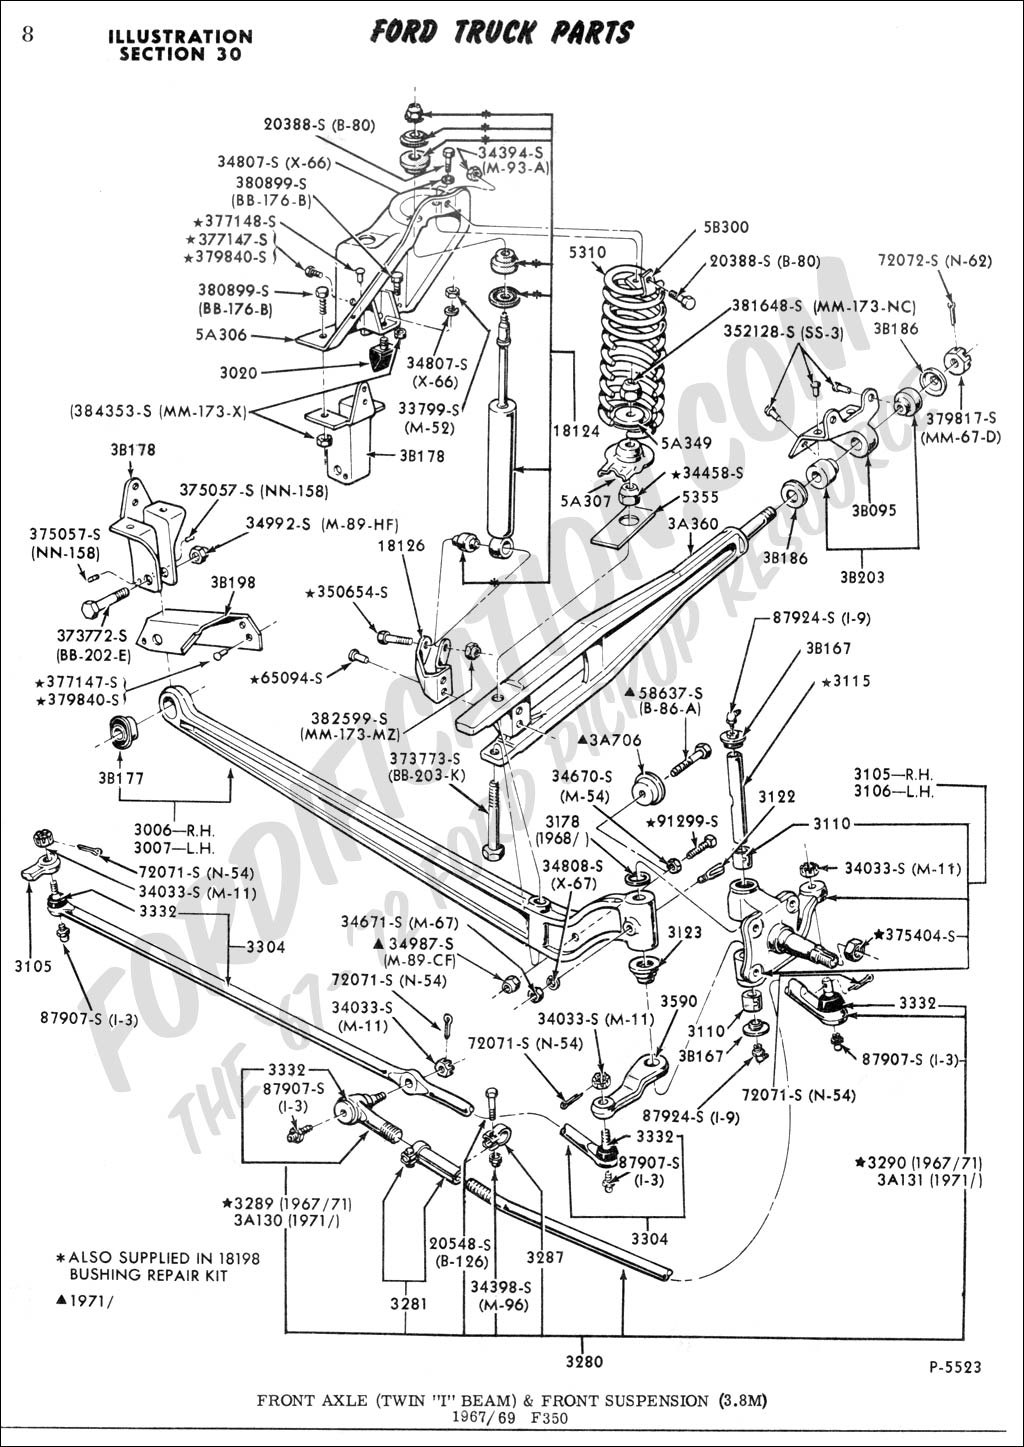 Ford Ranger Steering Linkage Diagram